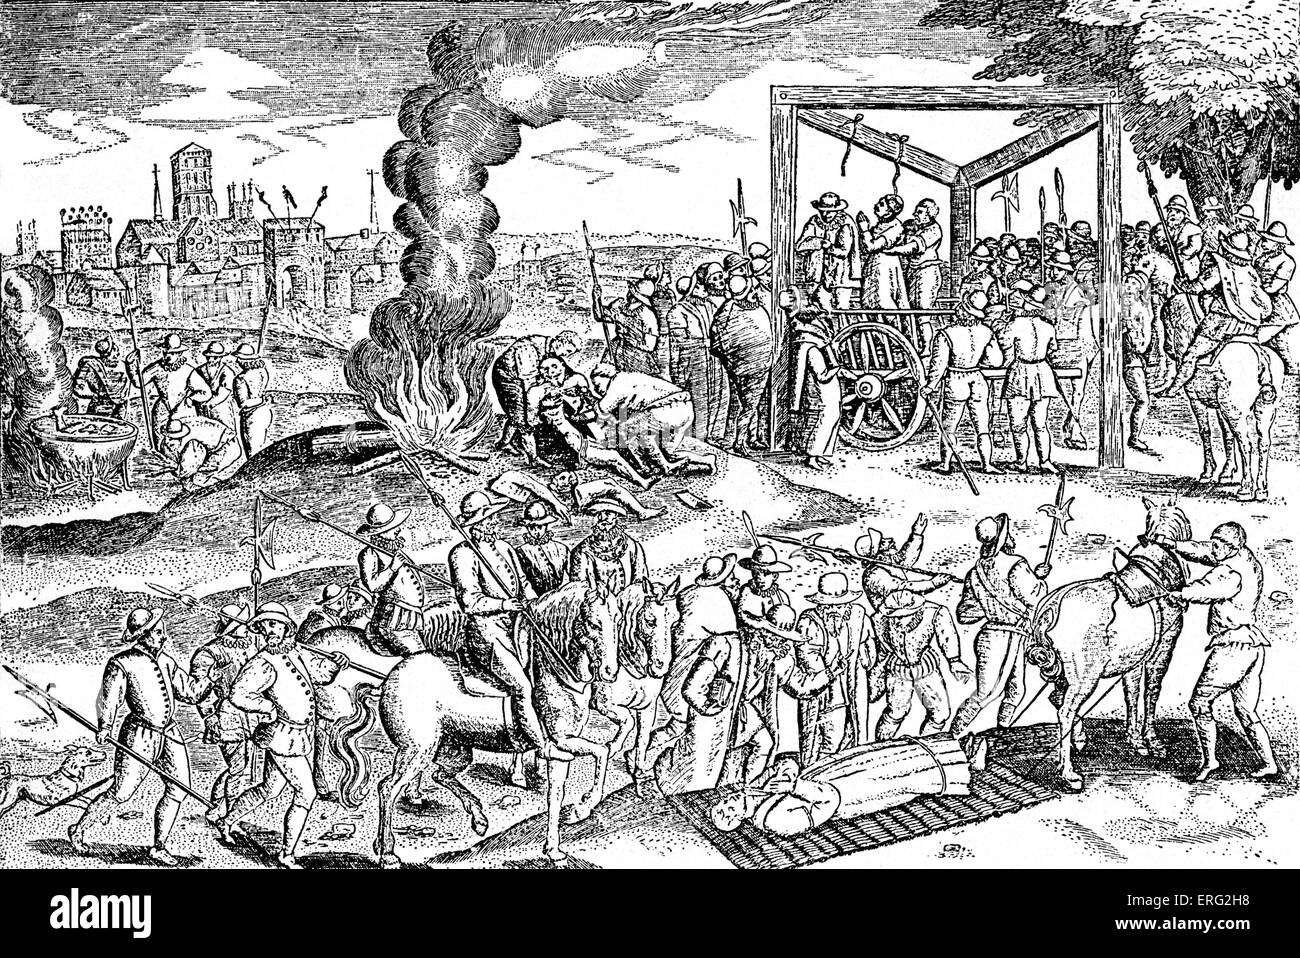 The hanging of Protestants in England during the reign of Mary, Queen of Scots,  8 December 1542 - 8 February 1587. - Stock Image